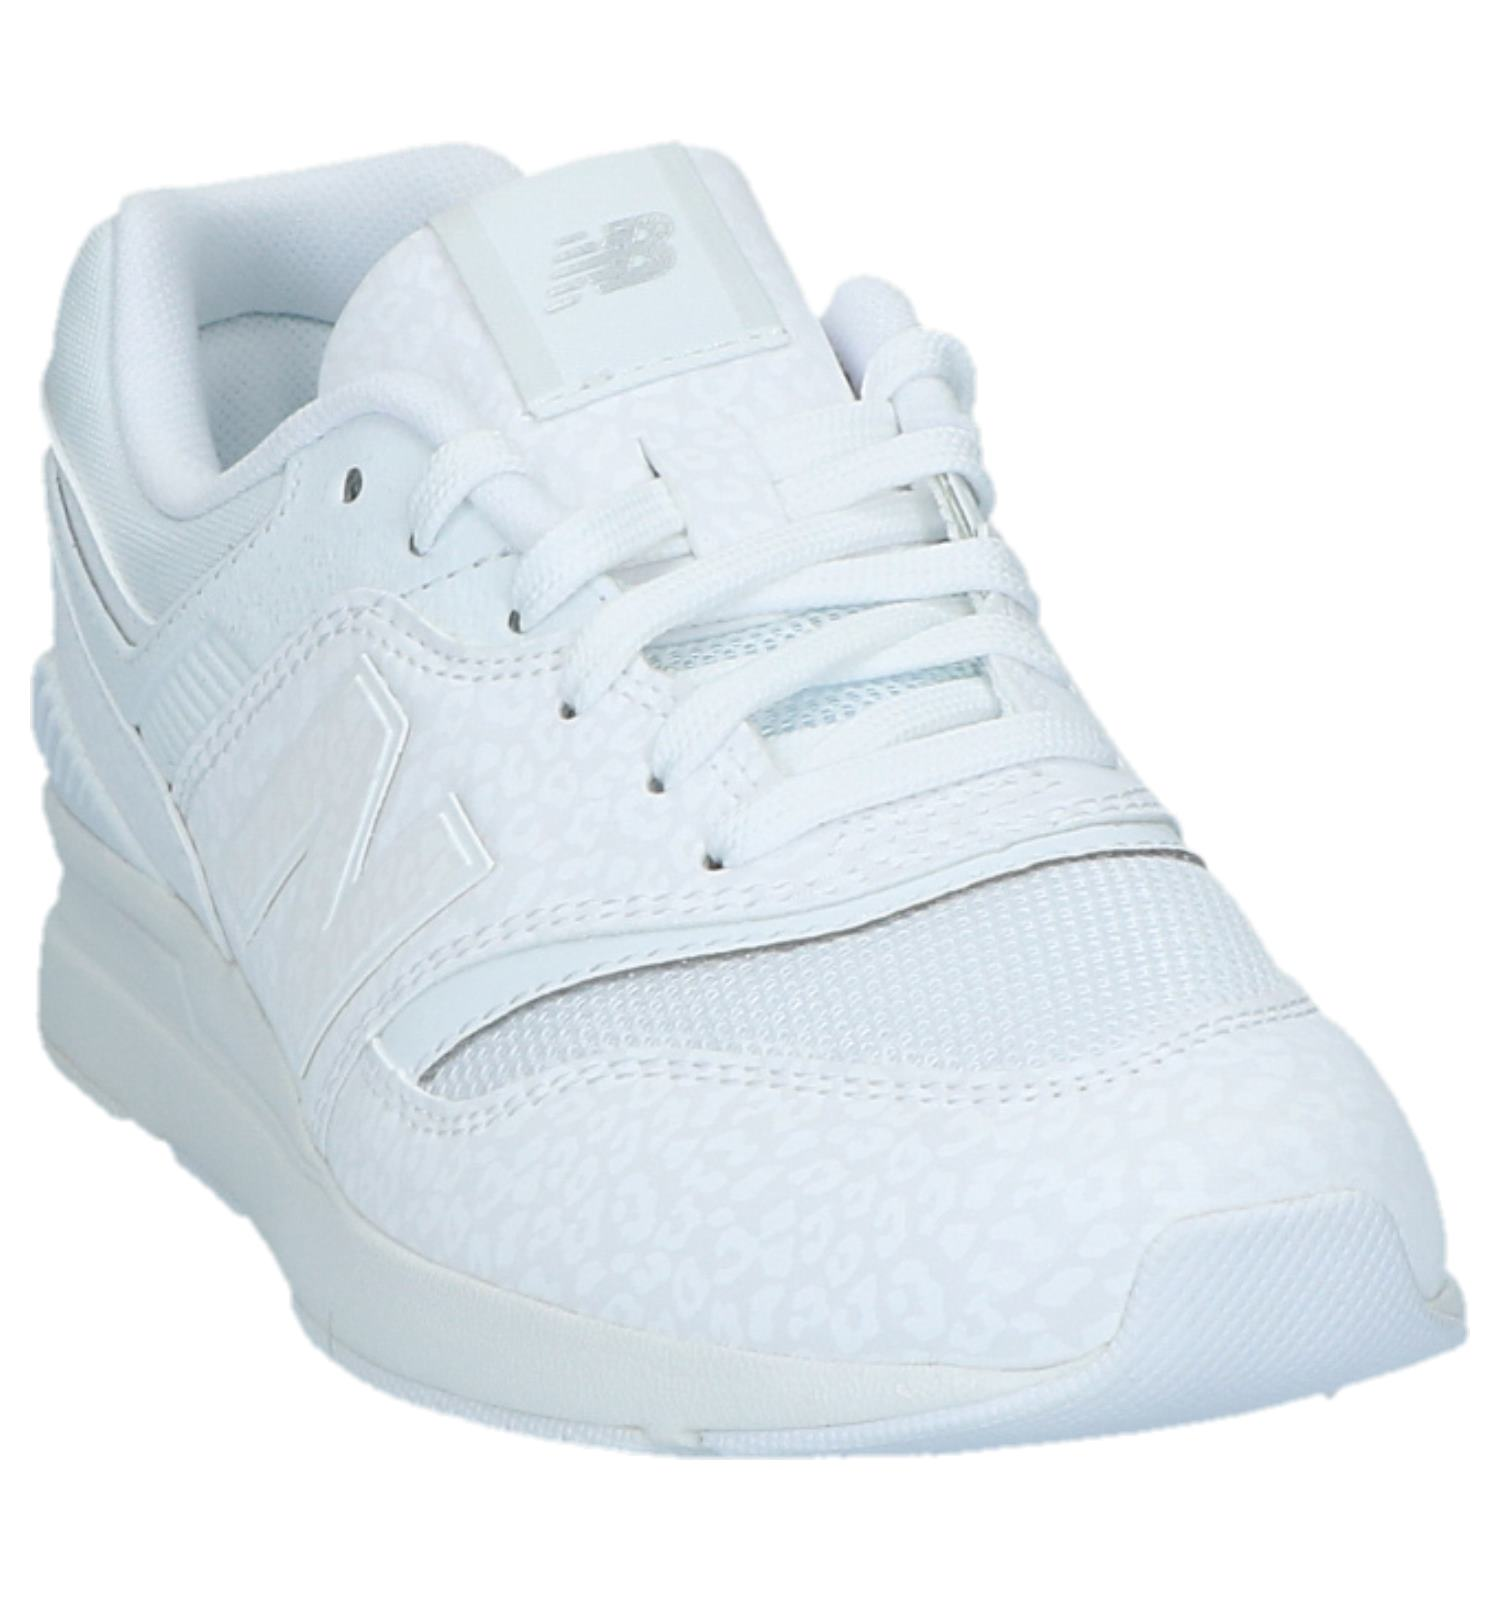 Balance Sneakers Sneakers Wl697 Witte New Balance Witte Balance New Wl697 Witte New Wl697 Kl1JFc3T